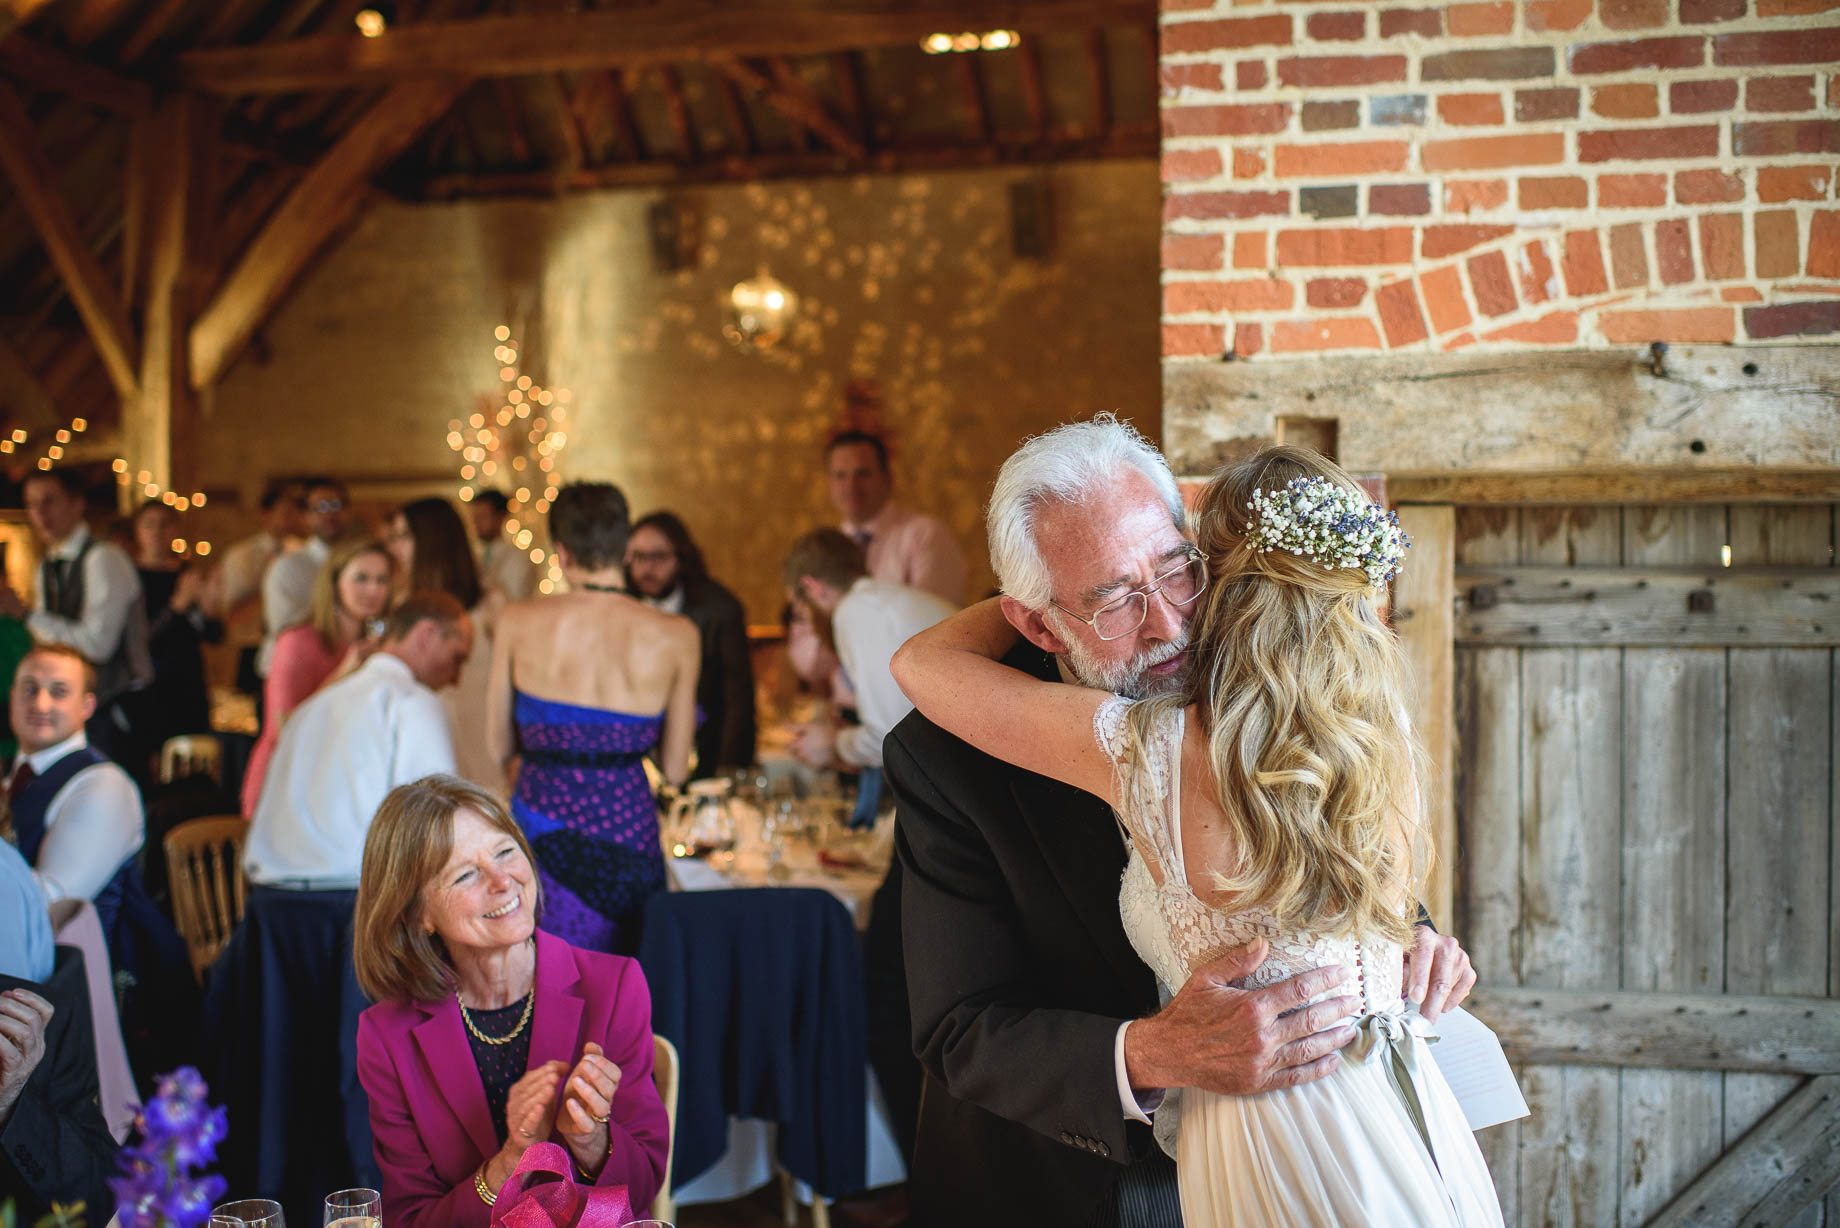 Bury Court Barn wedding photography by Guy Collier - Heather and Pat (138 of 170)